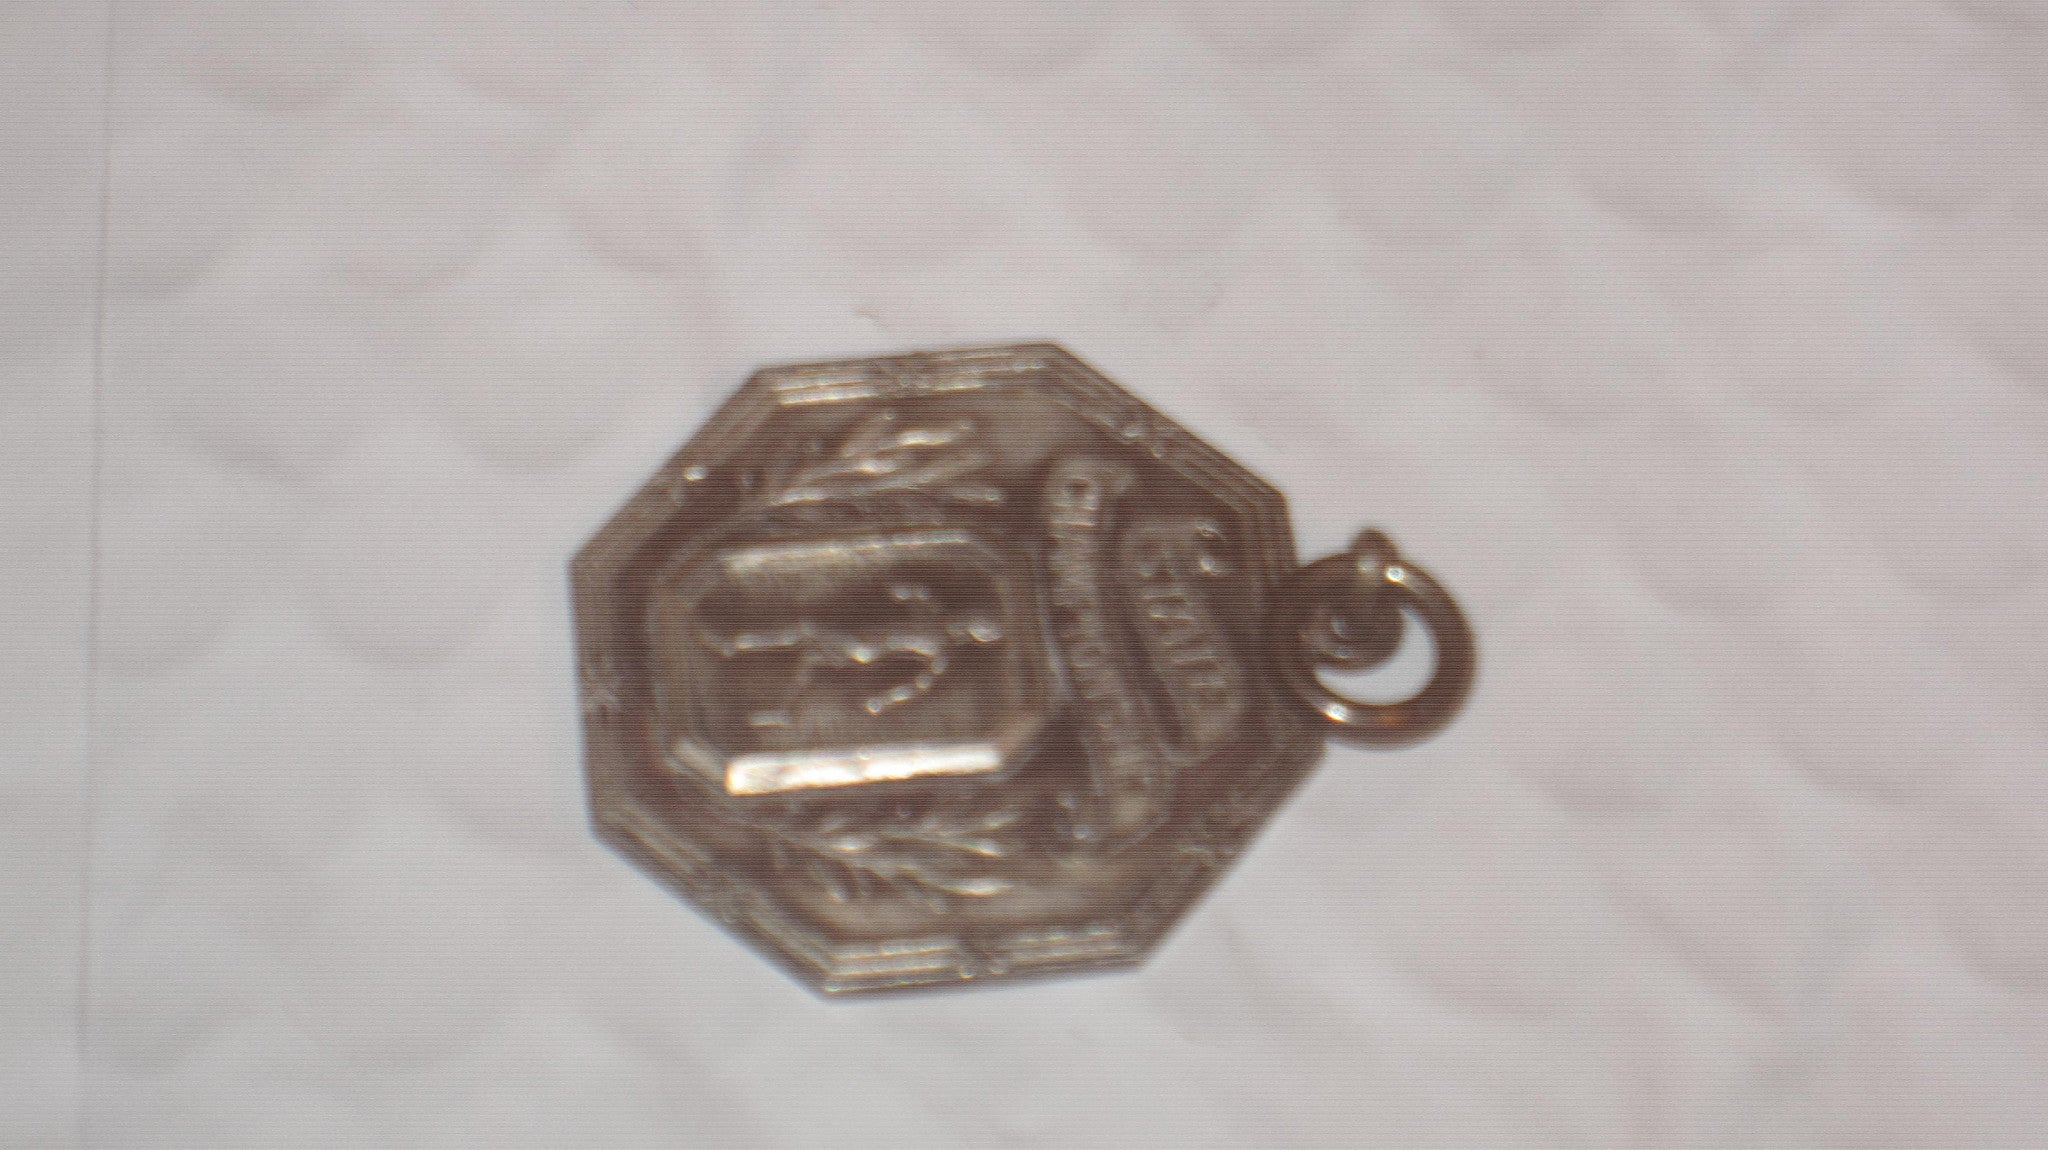 1925 Indiana High School Track & Field State Championship Medal - Vintage Indy Sports